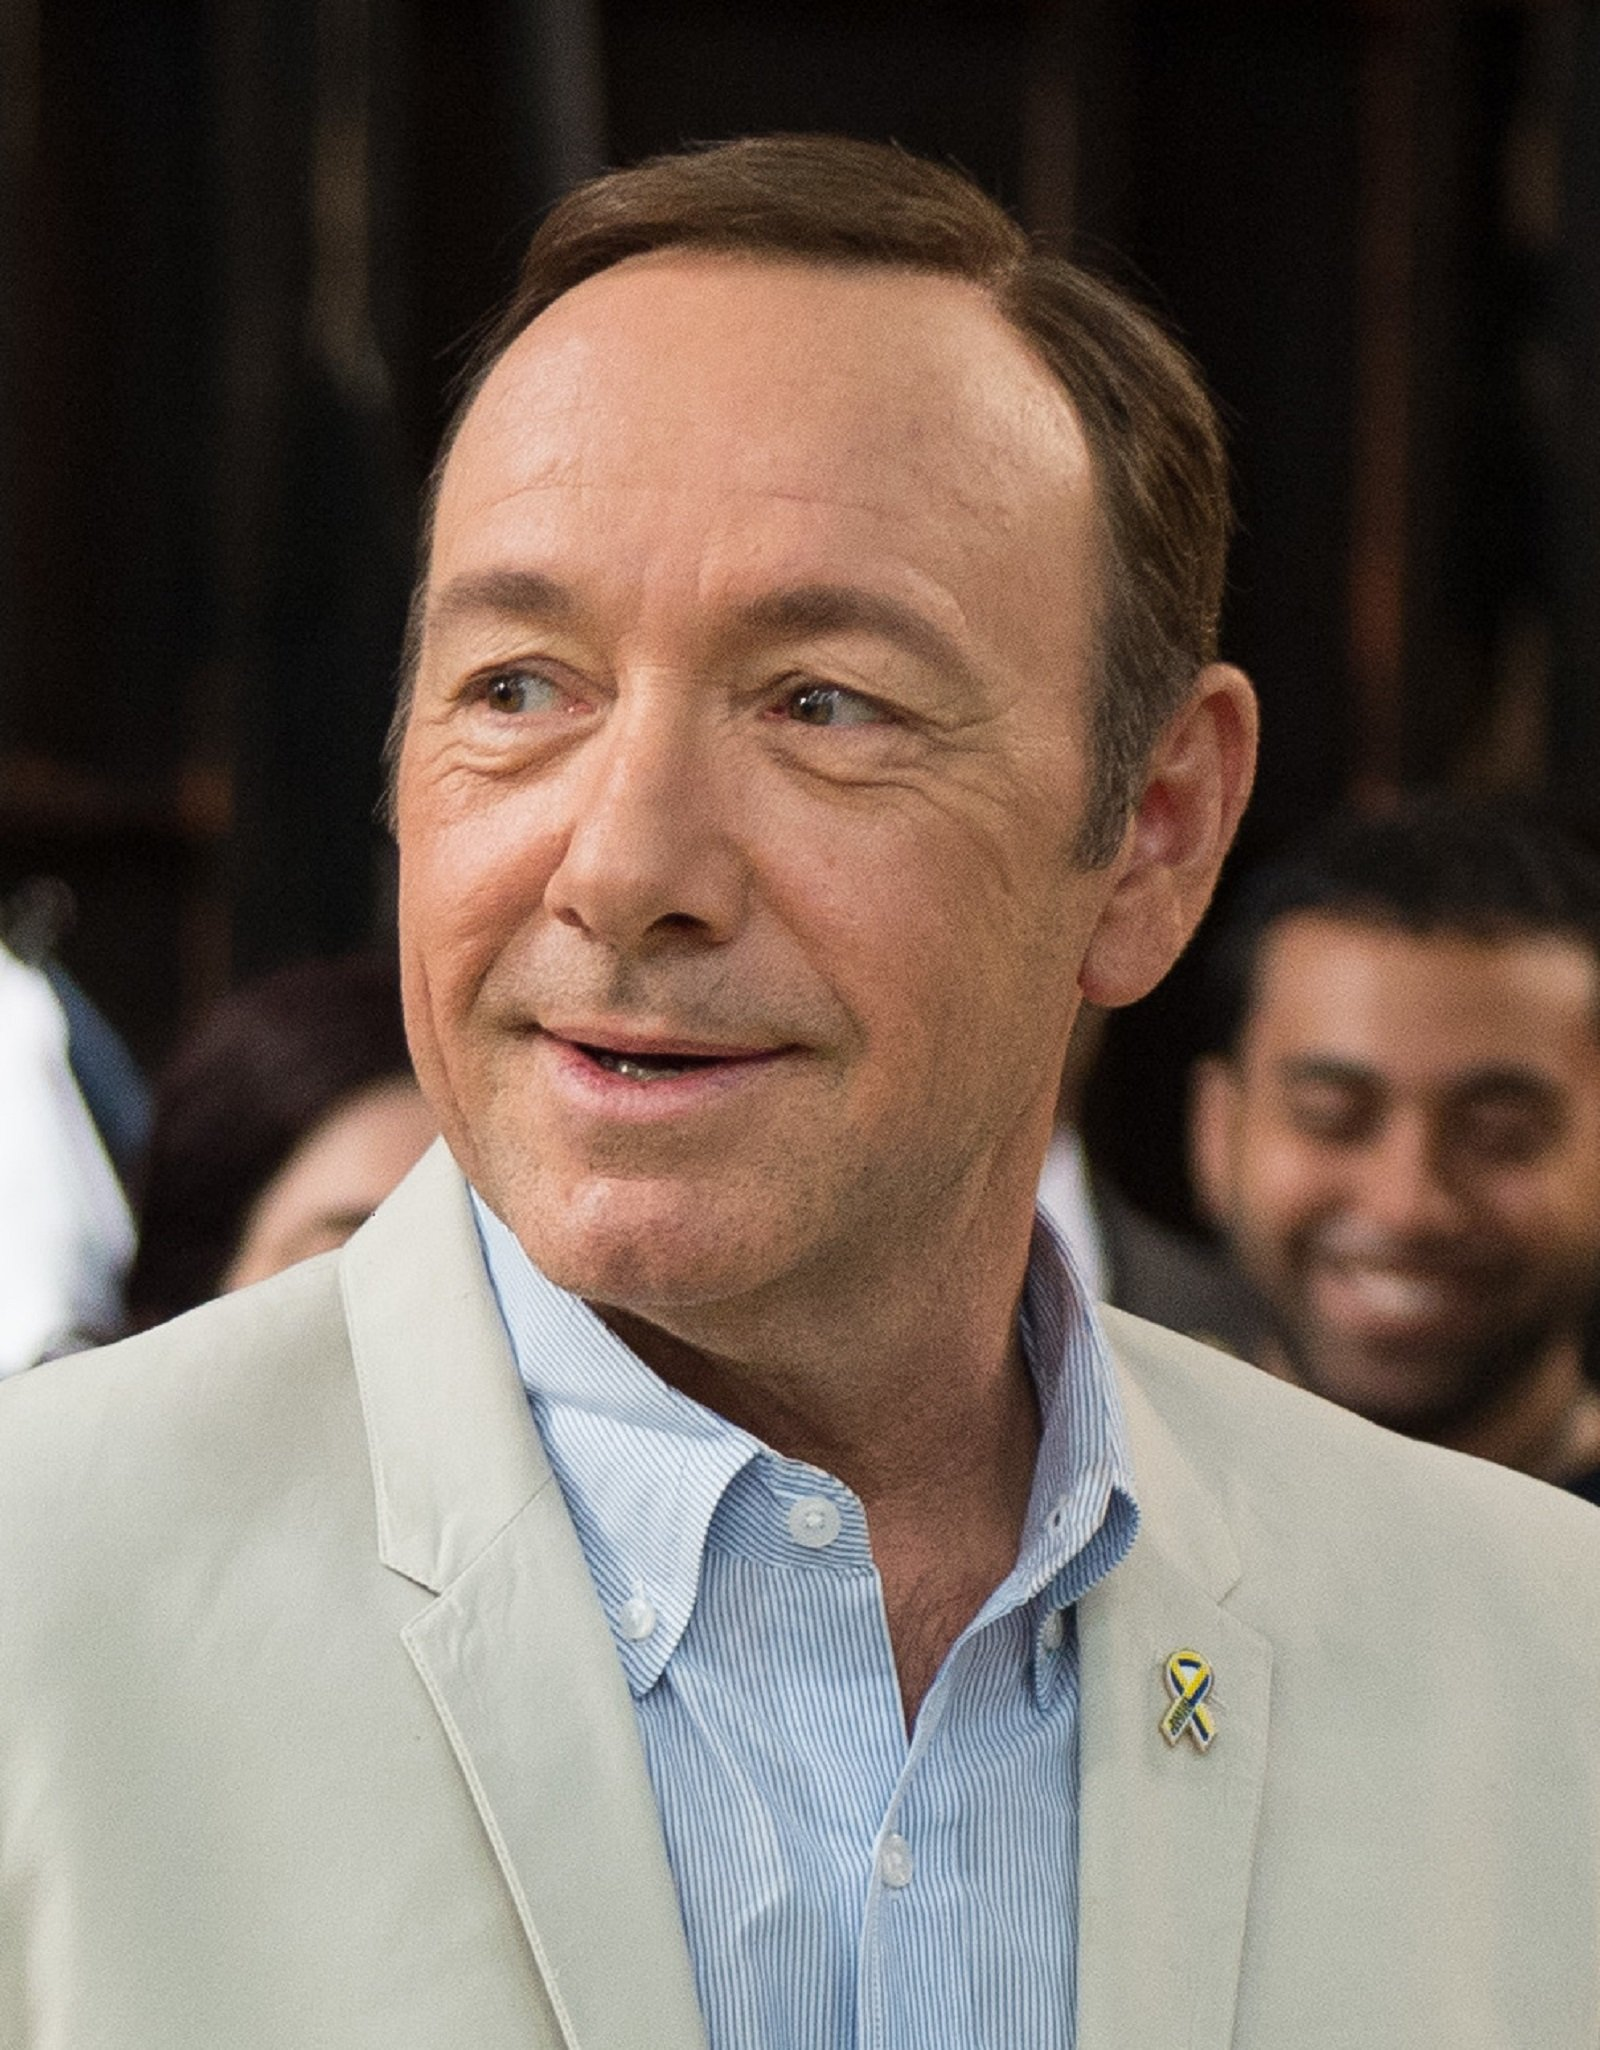 Kevin Spacey   Wikimedia Commons Maryland GovPics